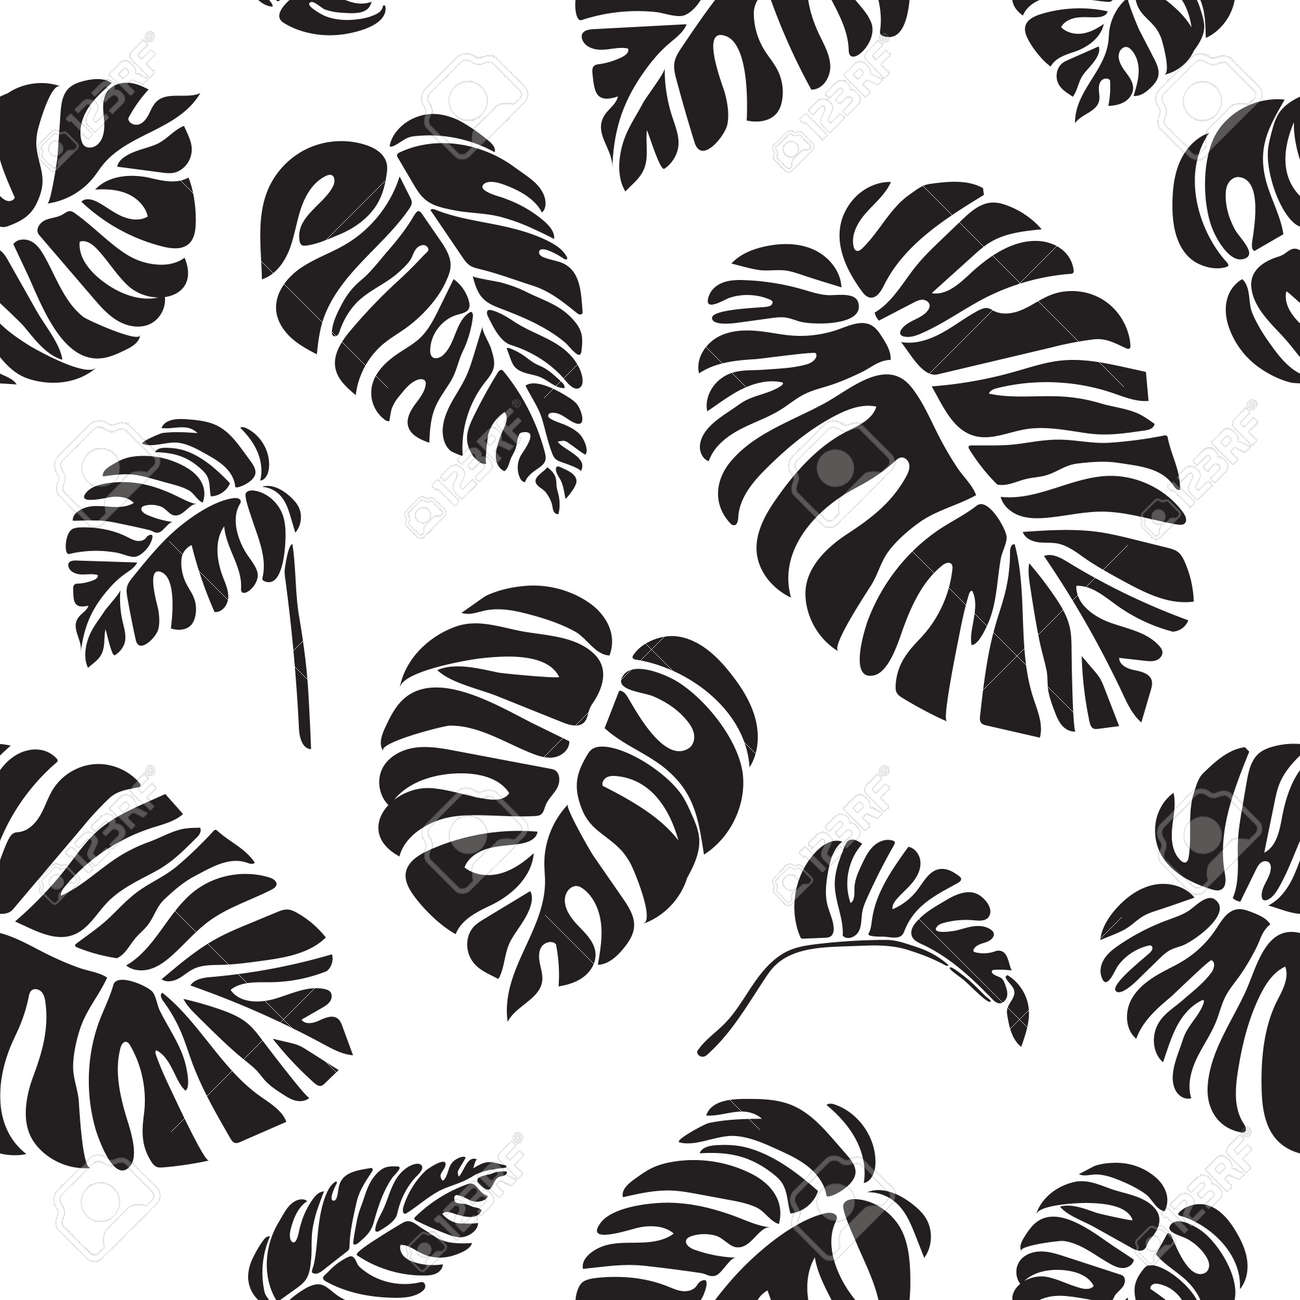 Monstera Black And White Seamless Pattern Tropical Leaves Vector Royalty Free Cliparts Vectors And Stock Illustration Image 104984017 Black and white jungle landscape silhouette animation loop. monstera black and white seamless pattern tropical leaves vector